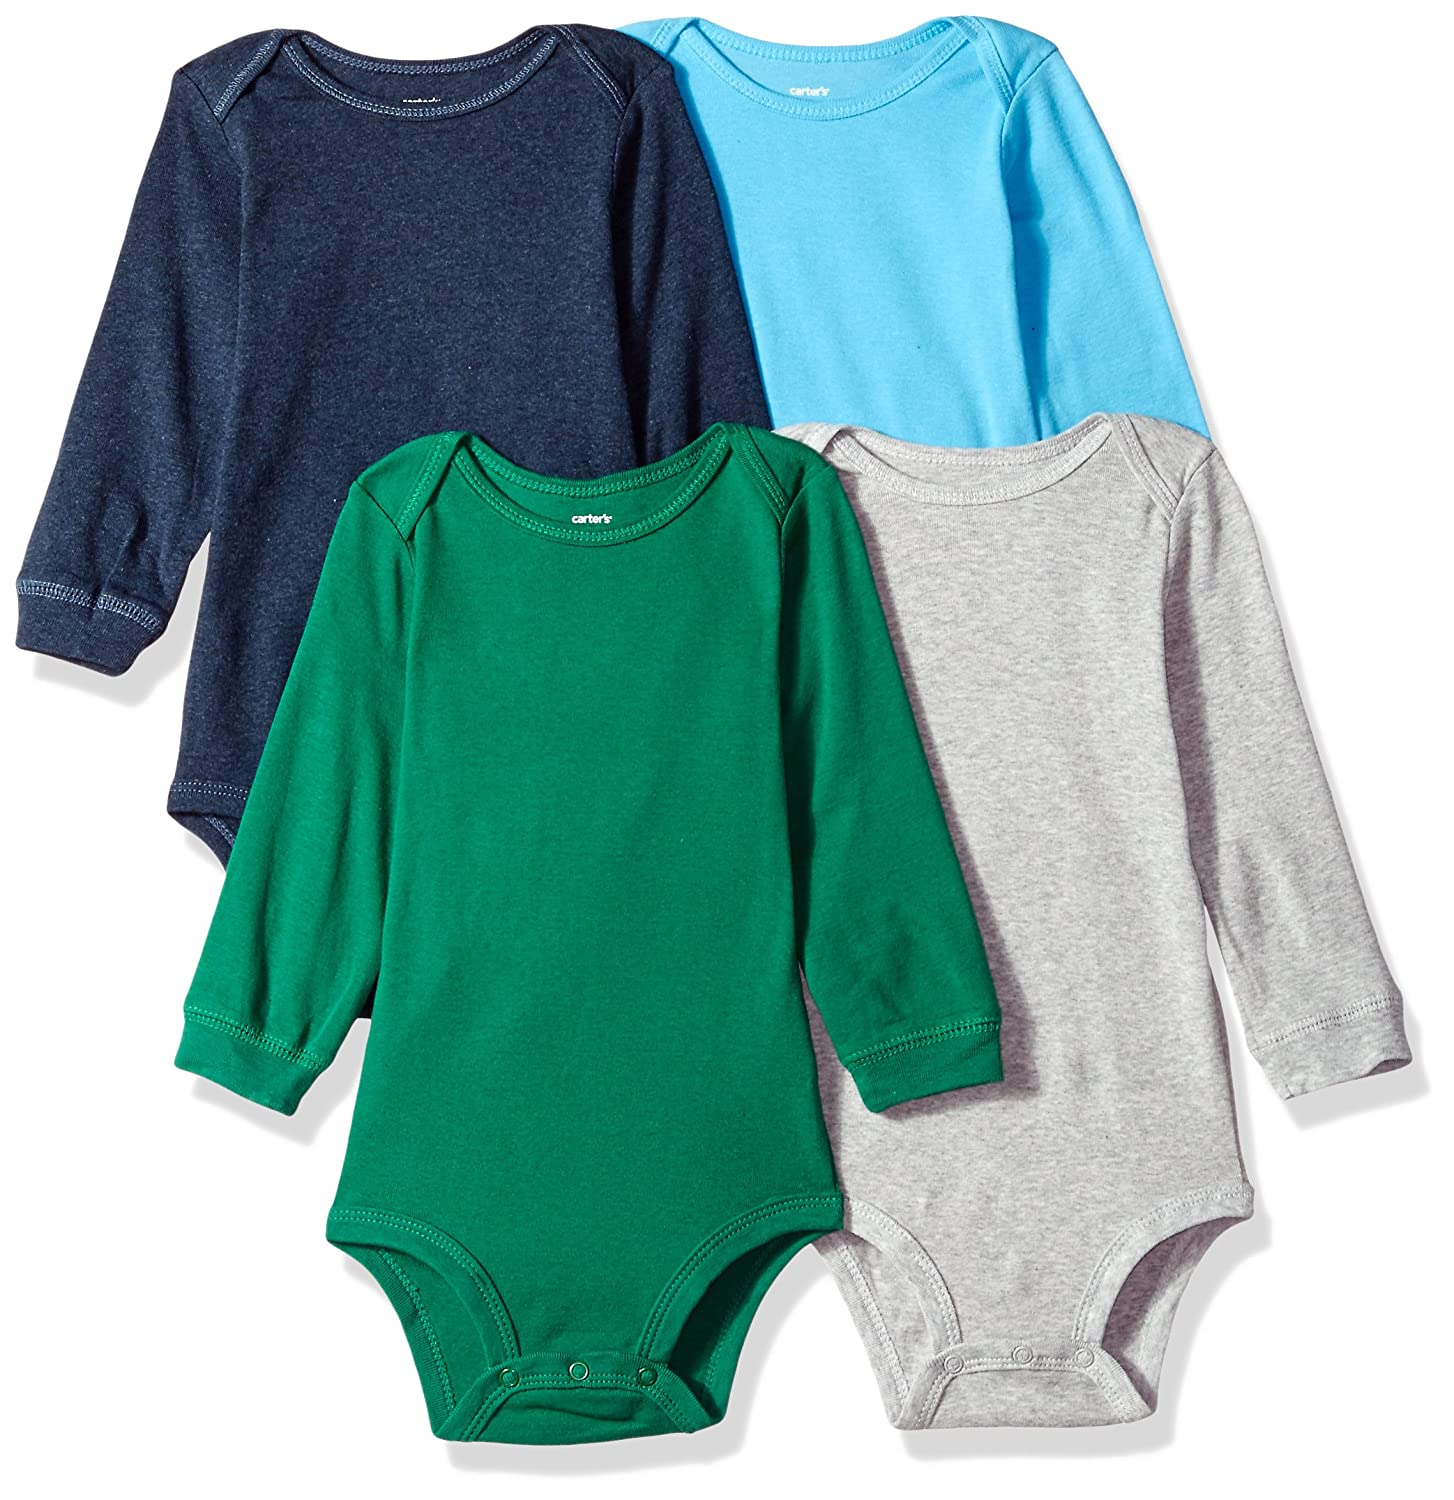 Carter's Baby Boys 4-pack Long-sleeve Bodysuits (NB-24M) (Newborn, Striped Multi) Carter' s 831424baby-boys